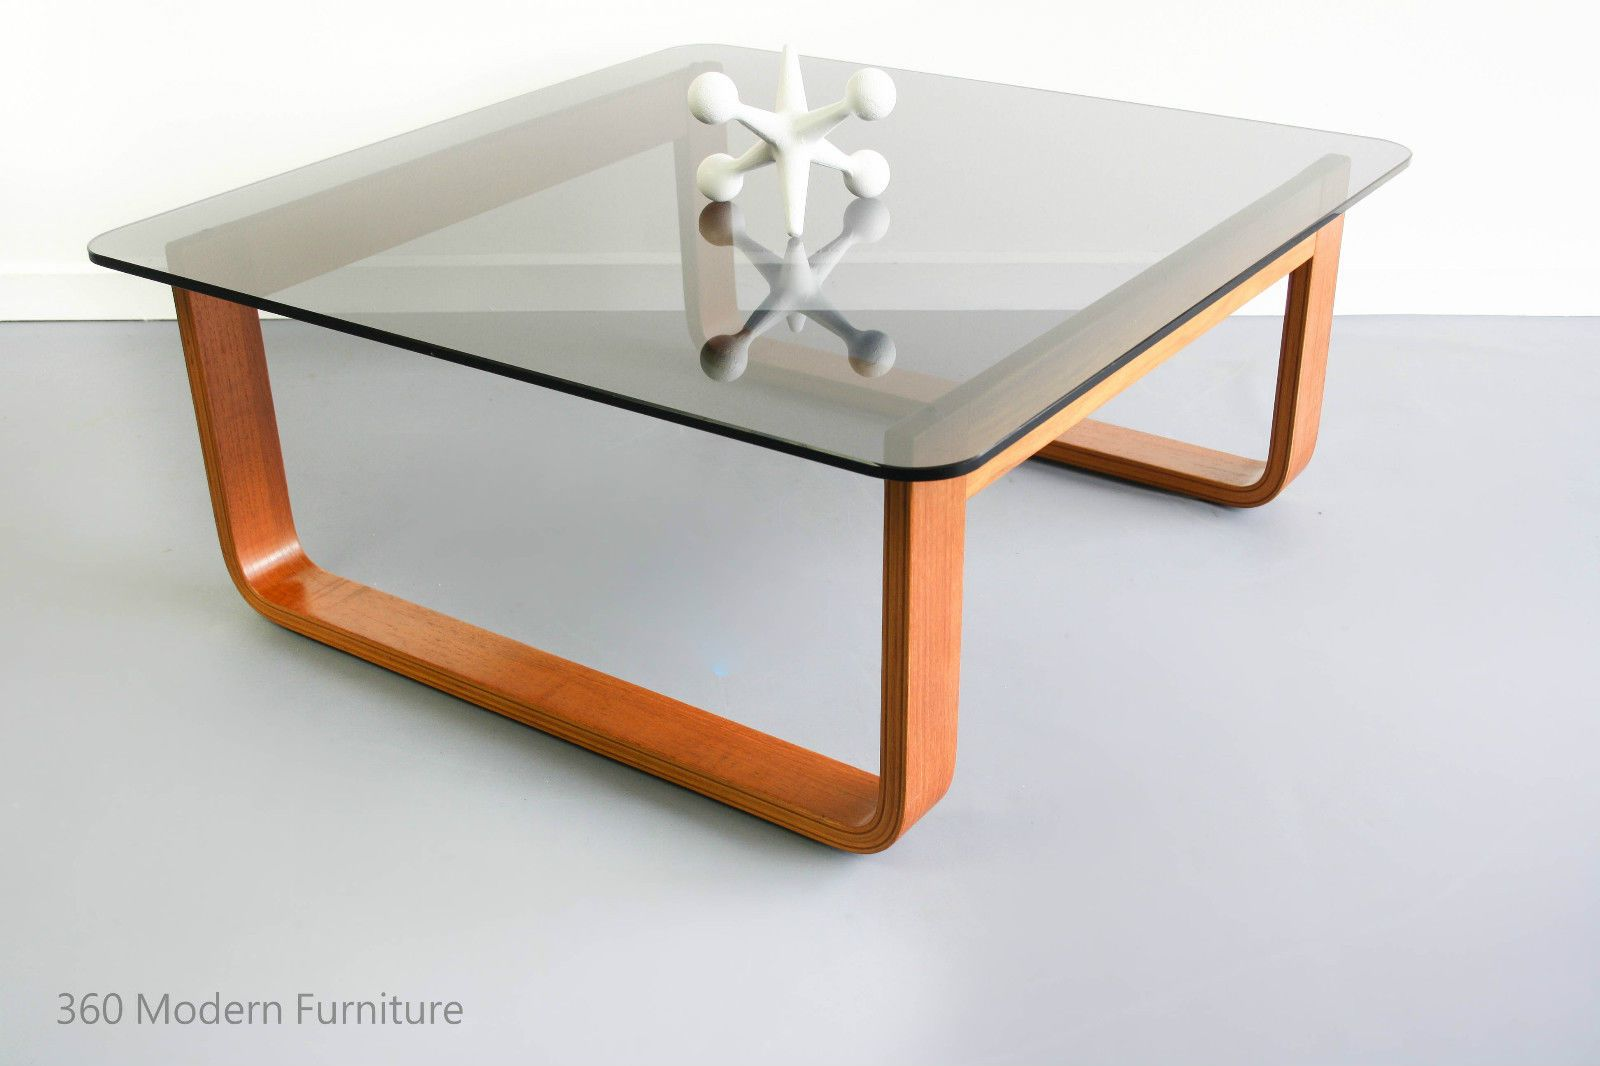 Mid century side coffee table tessa t4 retro vintage fred lowen mid century side coffee table tessa t4 retro vintage fred lowen teak parker era in home geotapseo Image collections